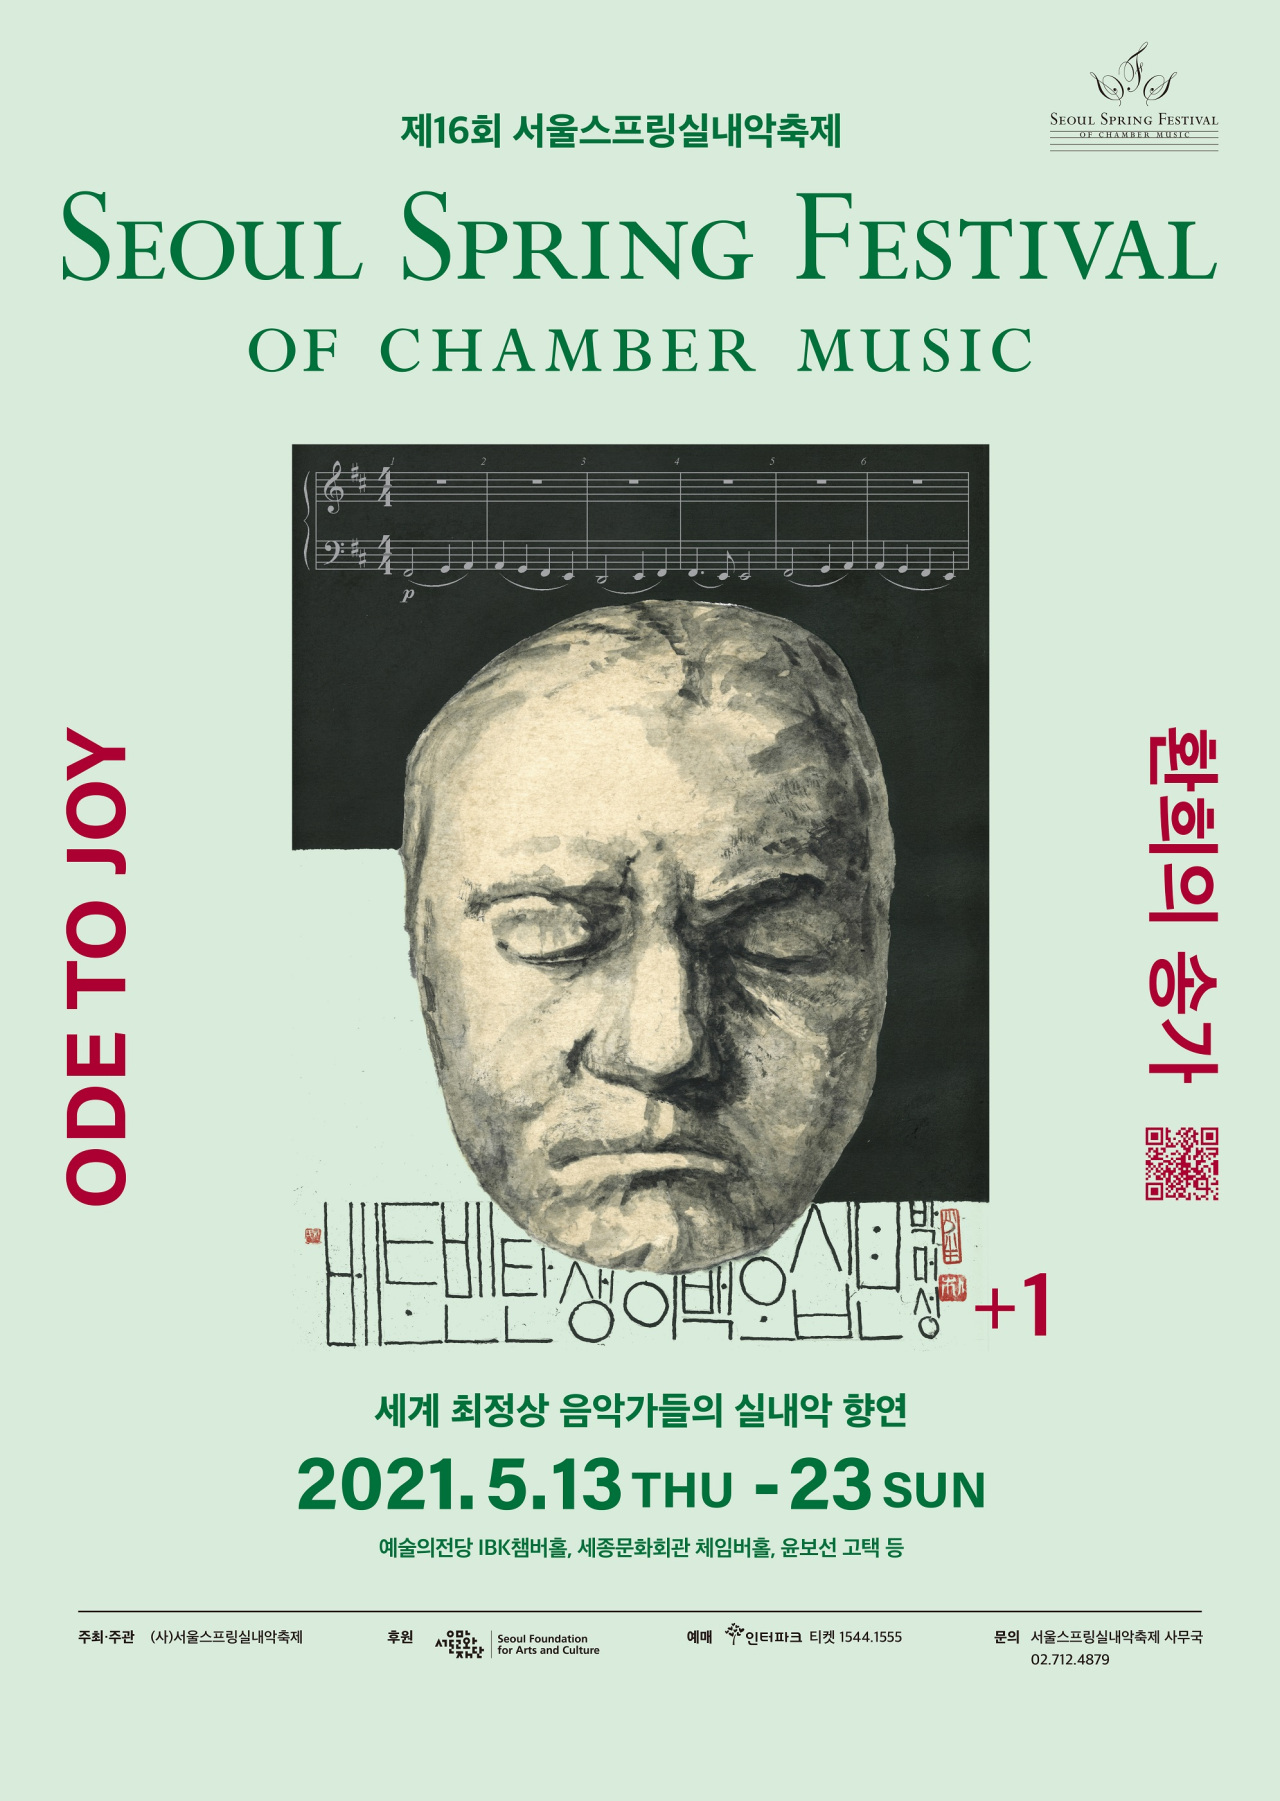 Poster image for the 2021 Seoul Spring Festival of Chamber Music (SSF)